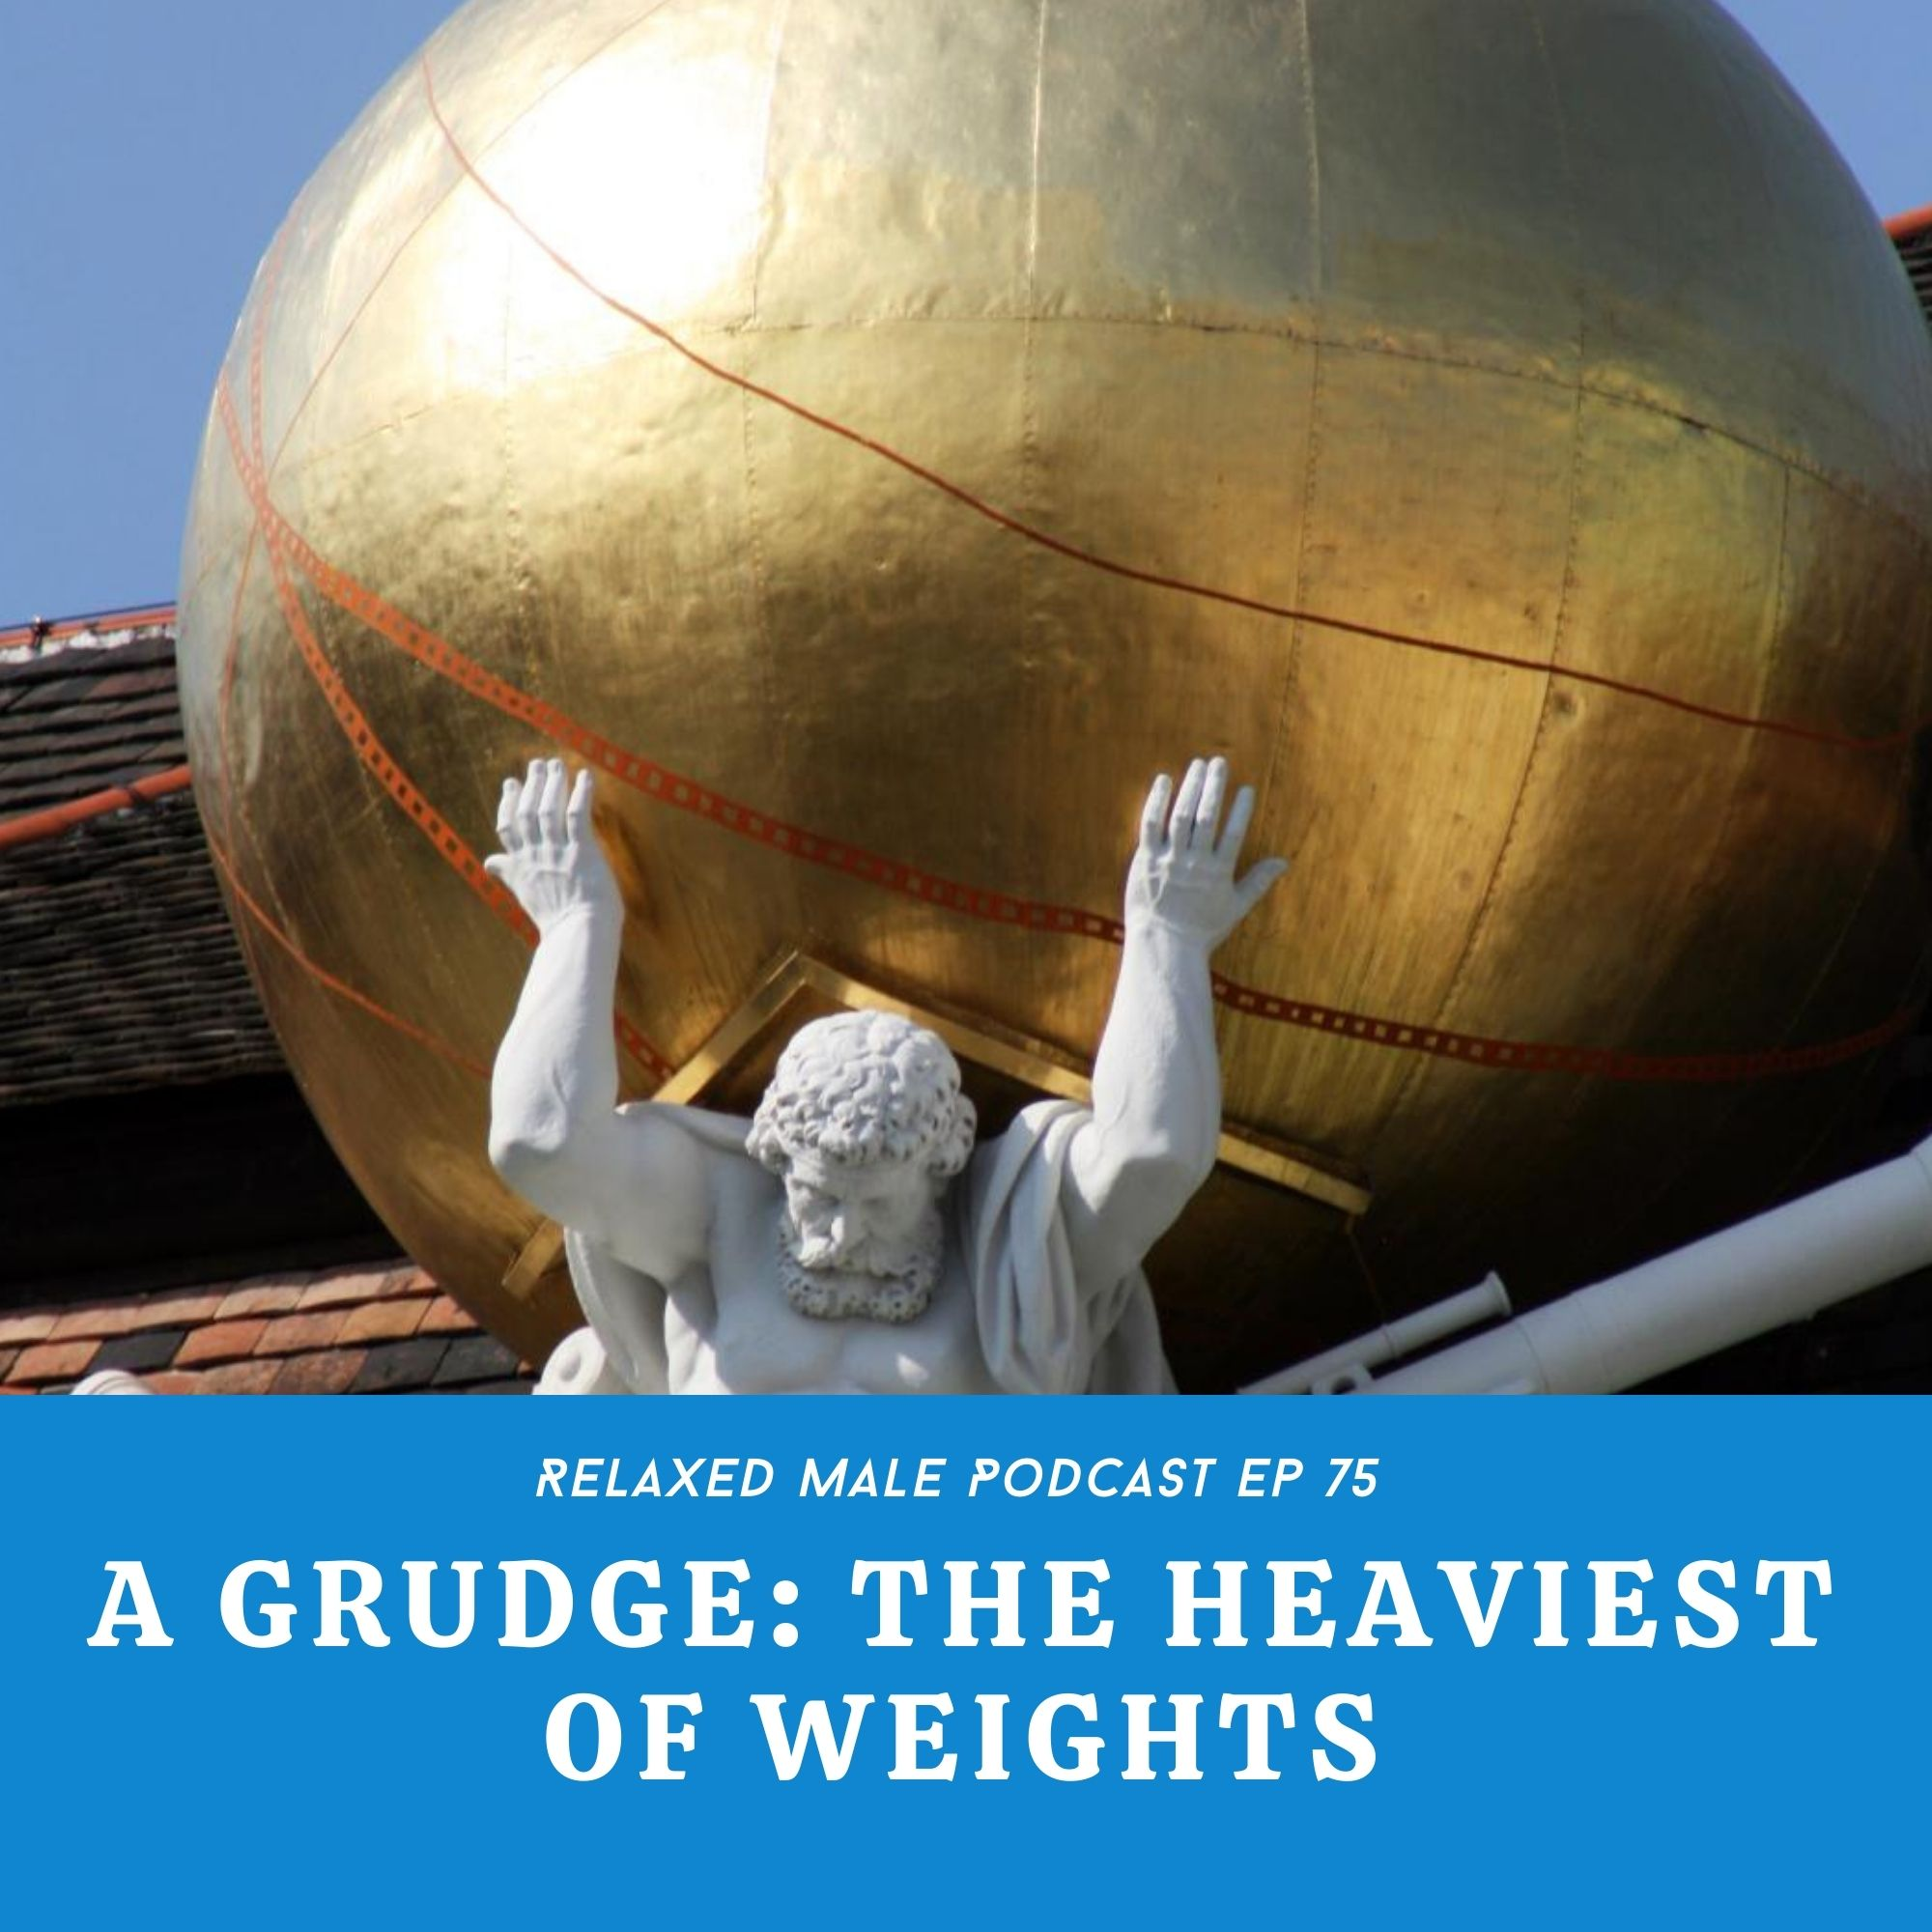 The Grudge: The Heaviest of Weights